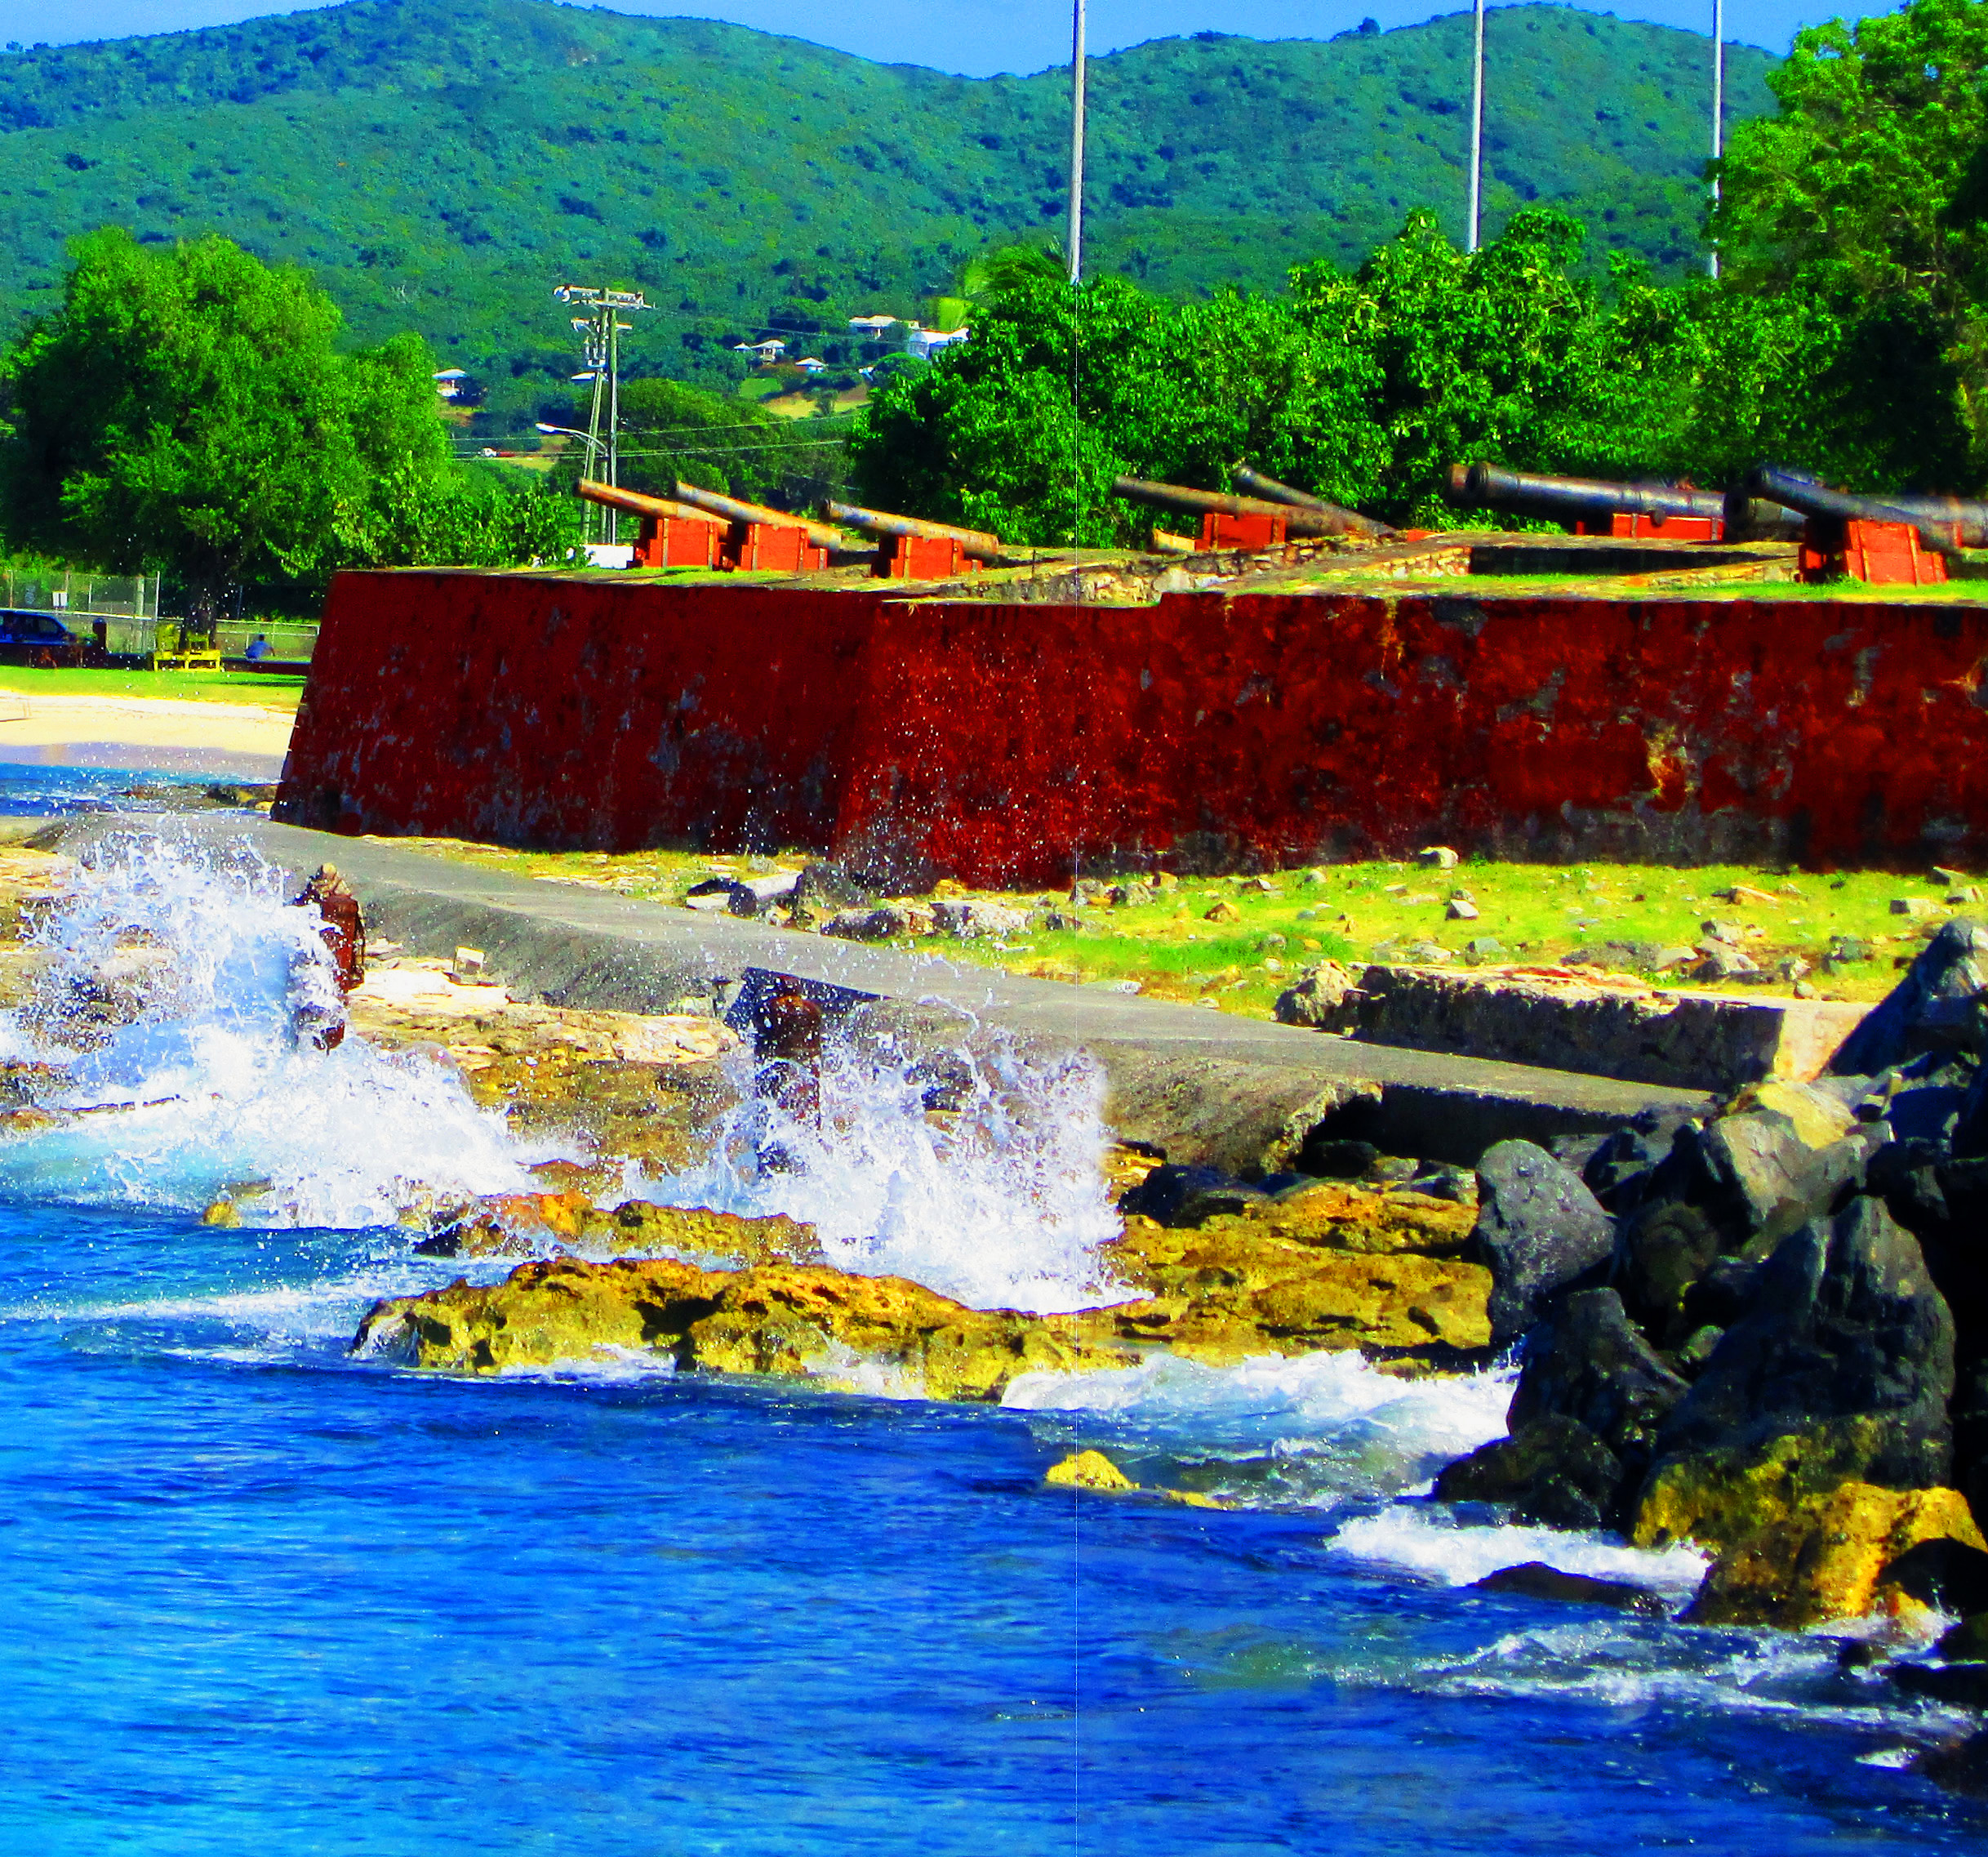 Caribbean Fort & Cannons